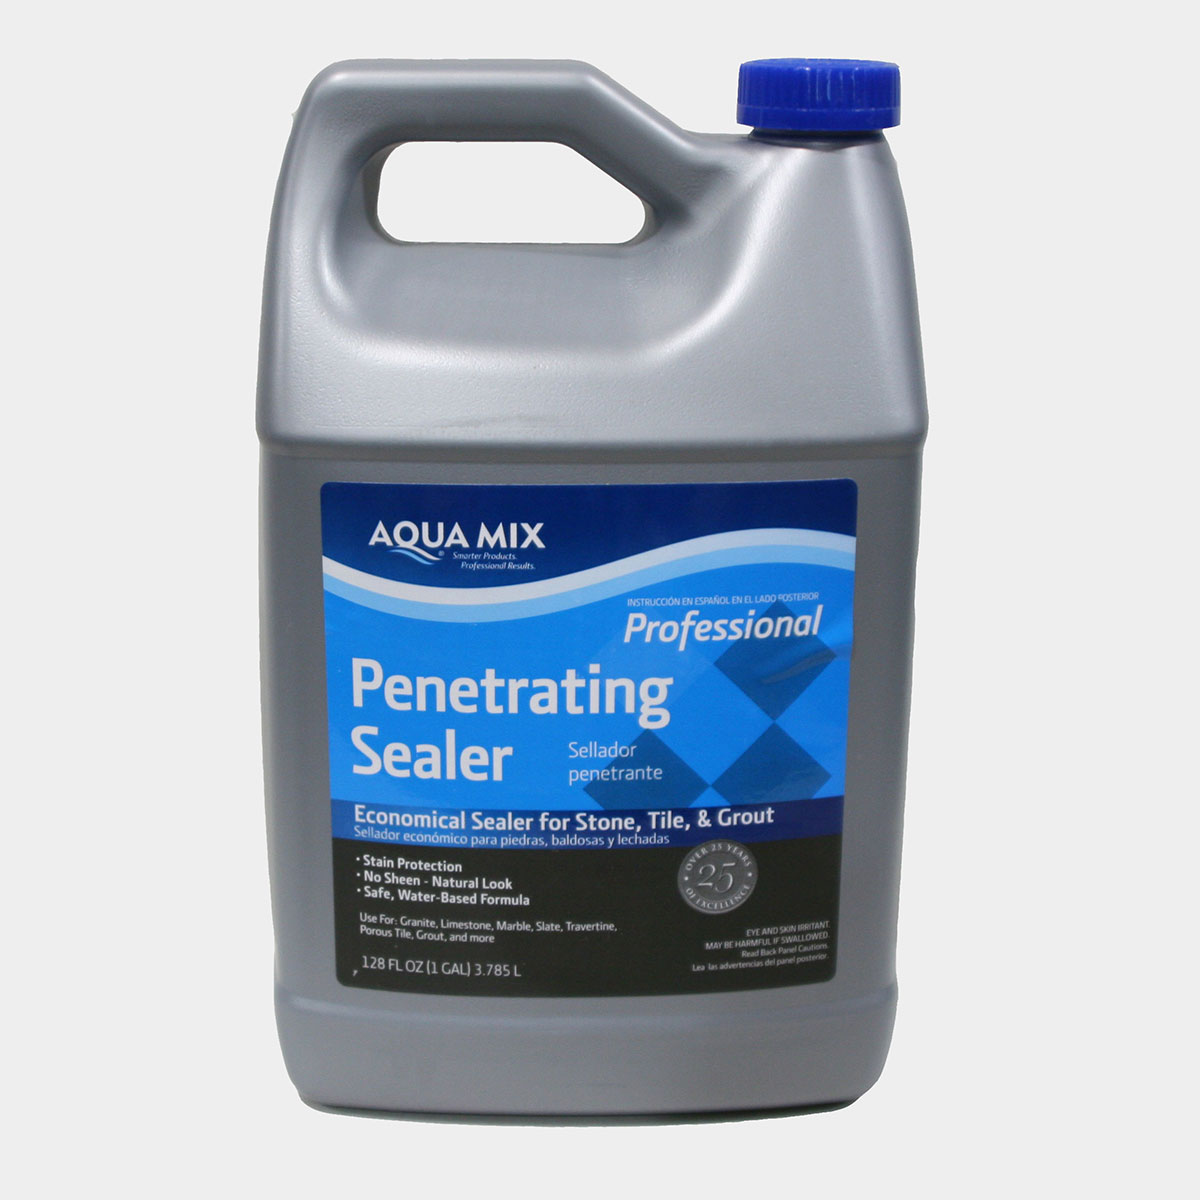 aqua mix penetrating sealer instructions